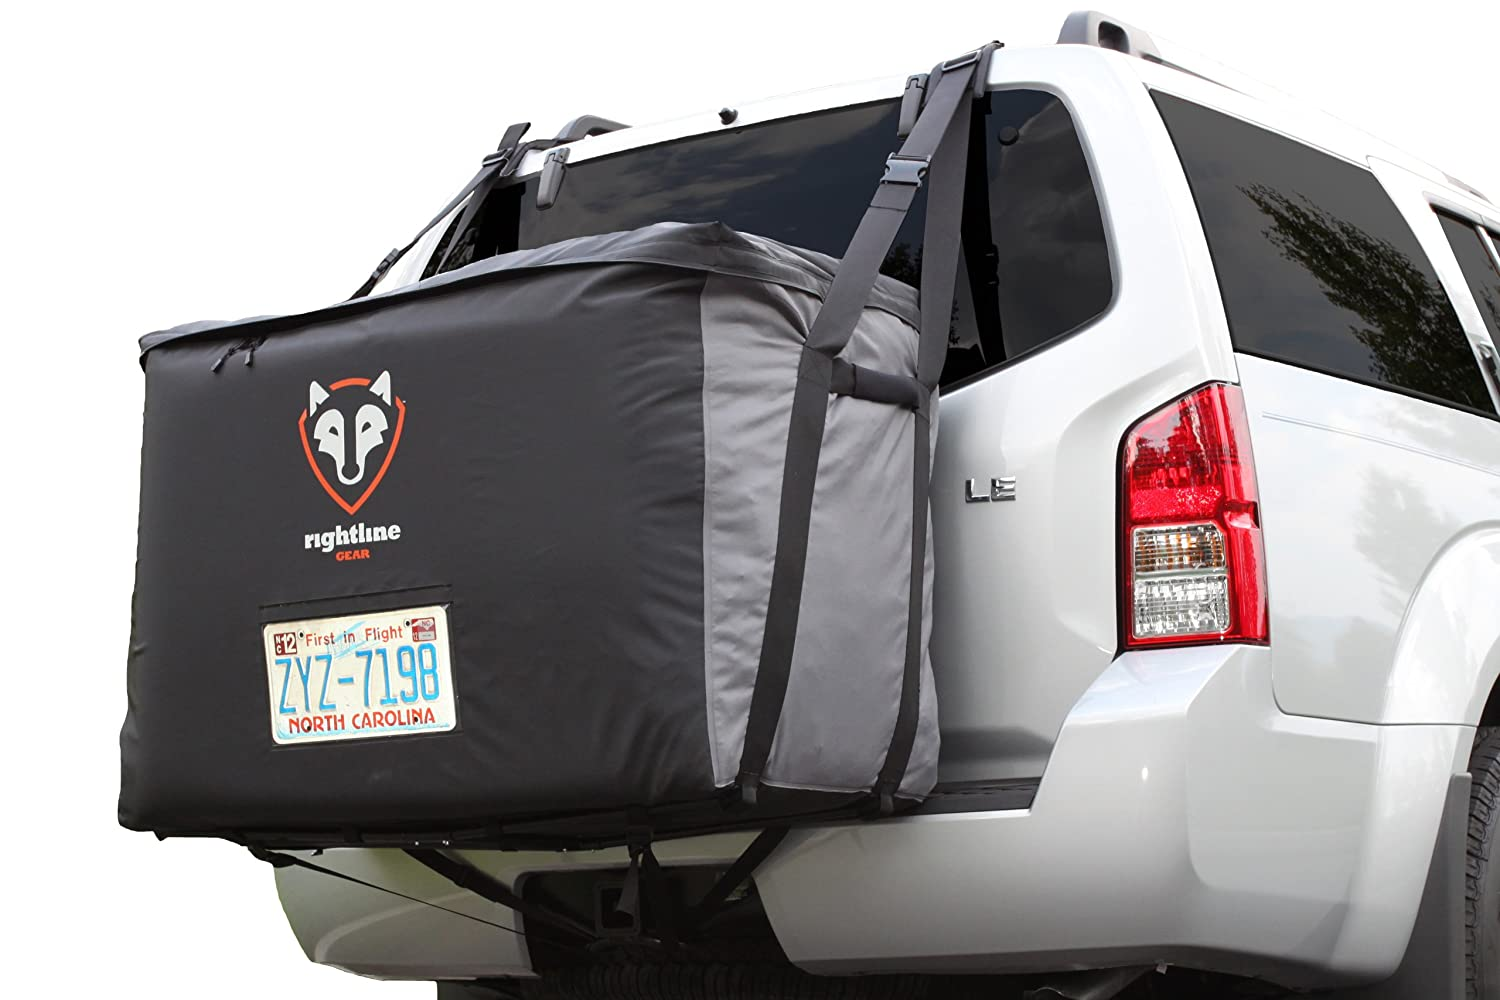 Rightline Gear 100B90 Cargo Saddlebag Rear Mounted Carrier, 13 cubic feet, 100% Waterproof